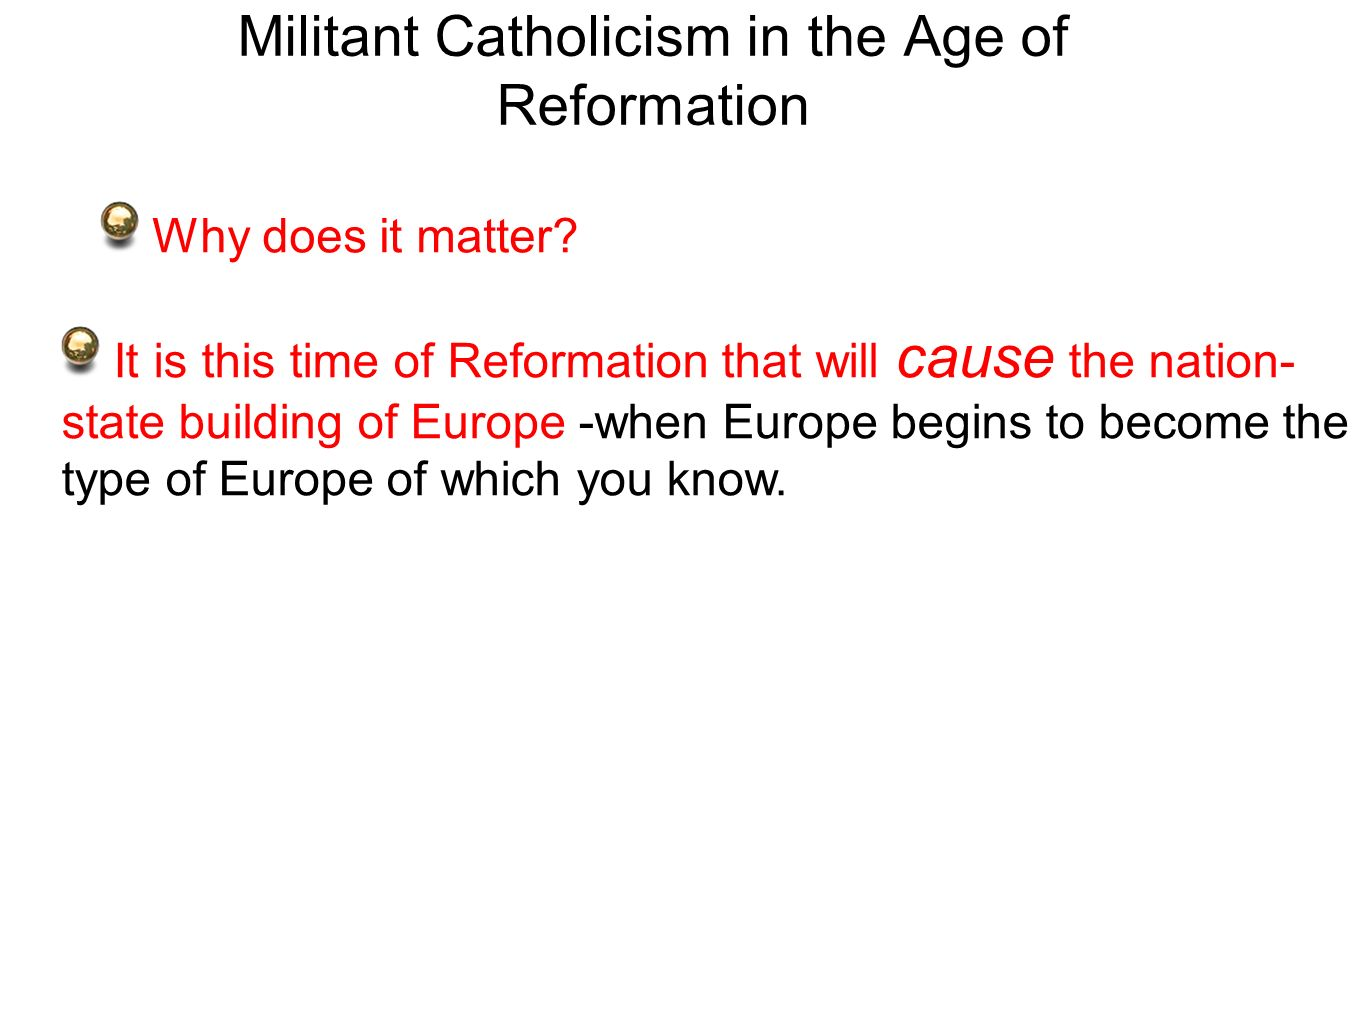 Militant Catholicism in the Age of Reformation